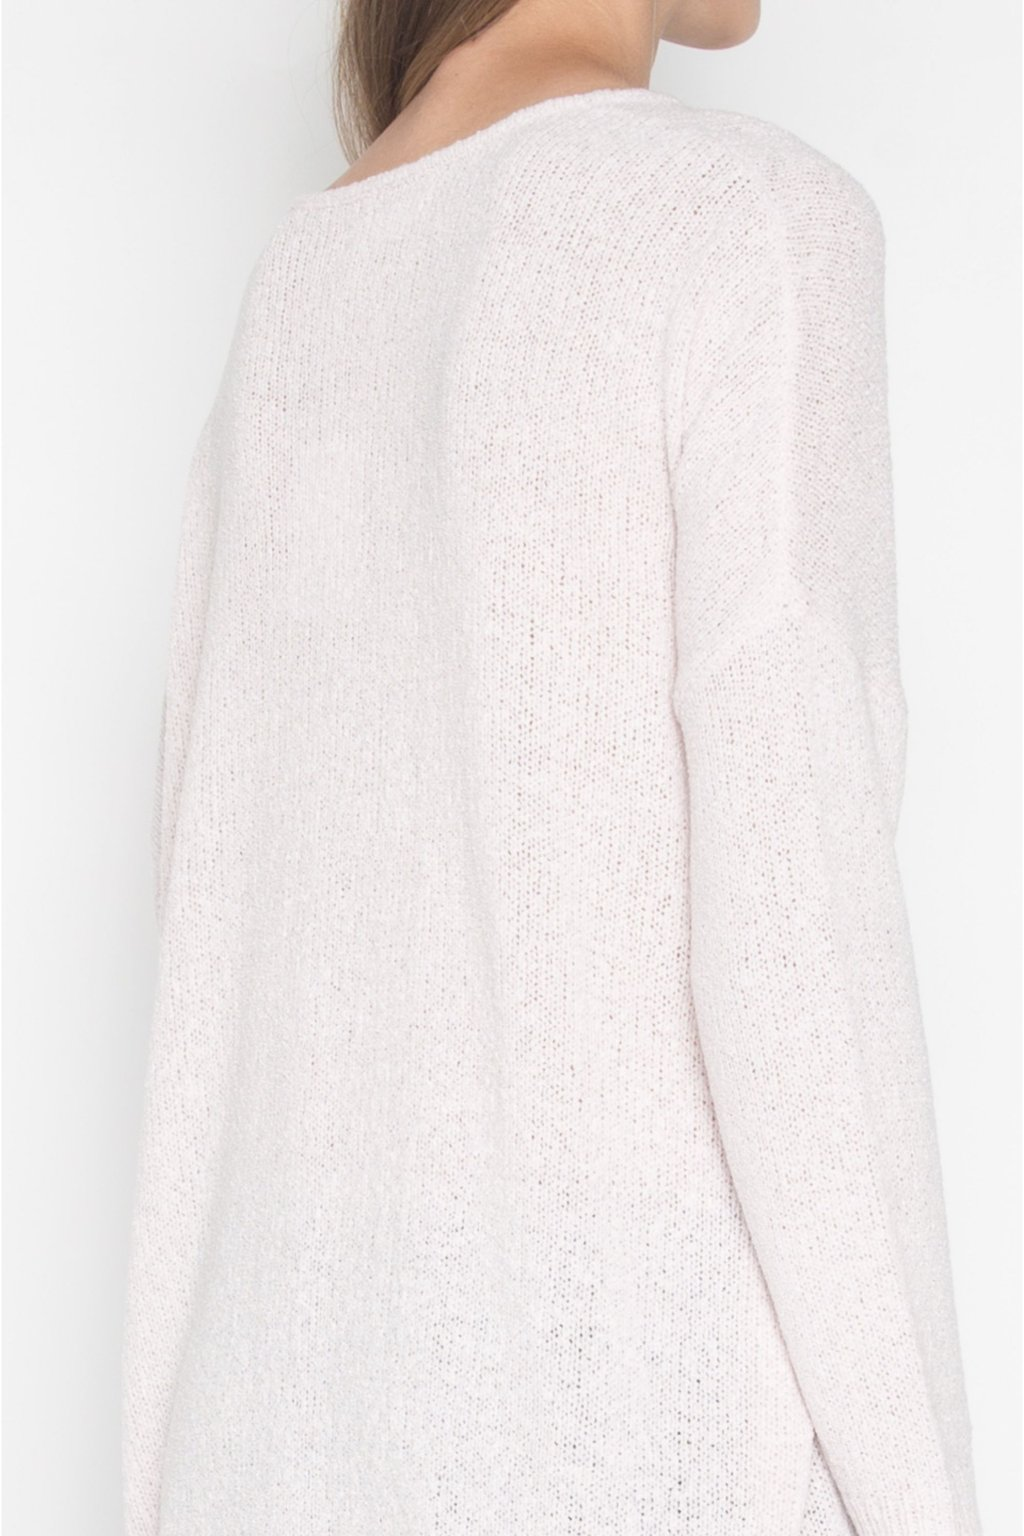 Sweater 1791 Light Pink 6